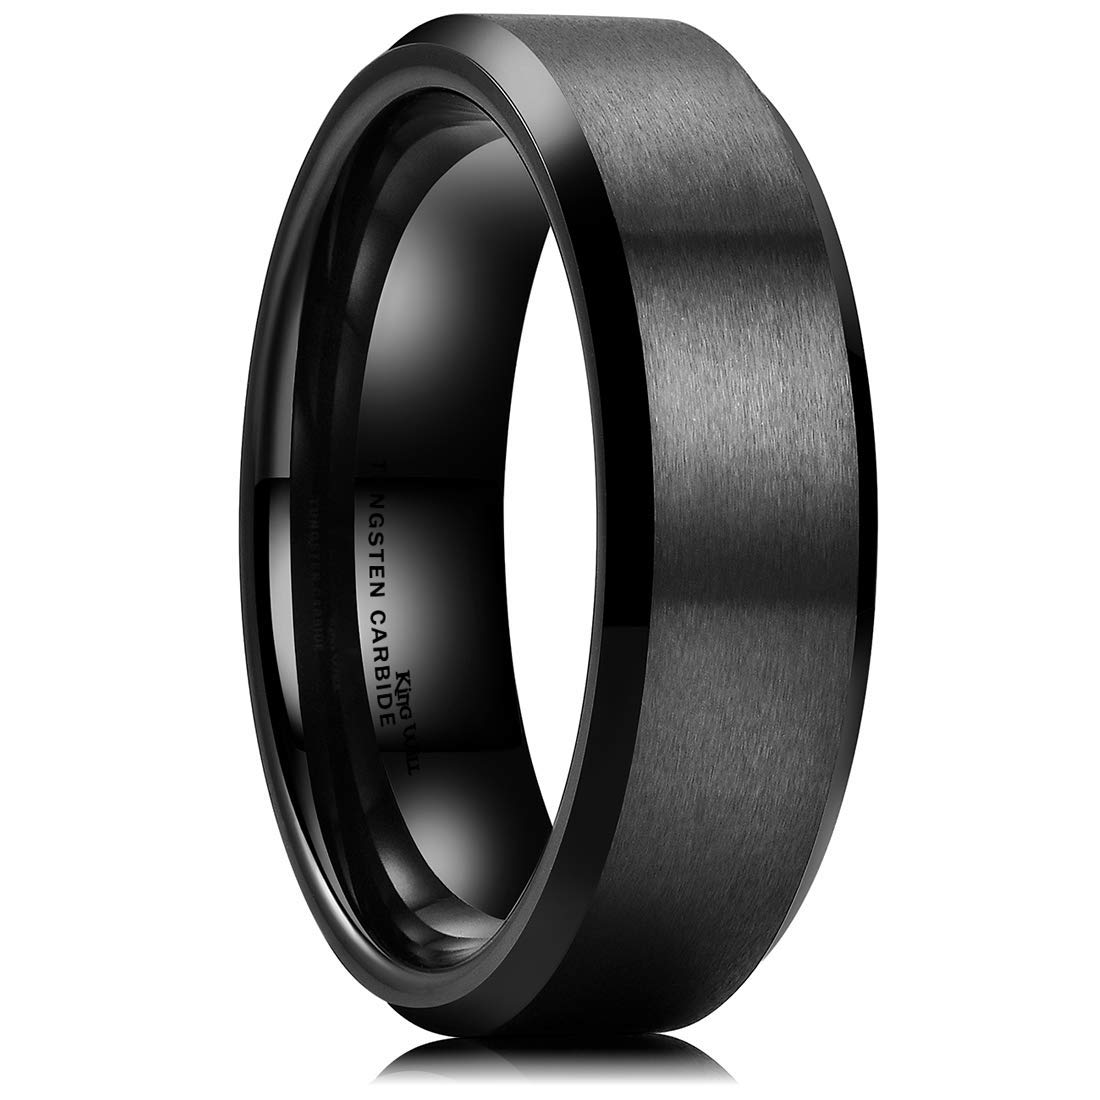 King Will Glory Mens 4mm 6mm 8mm Tungsten Carbide Ring 24k Gold Plated Domed Polished Finish Wedding Band